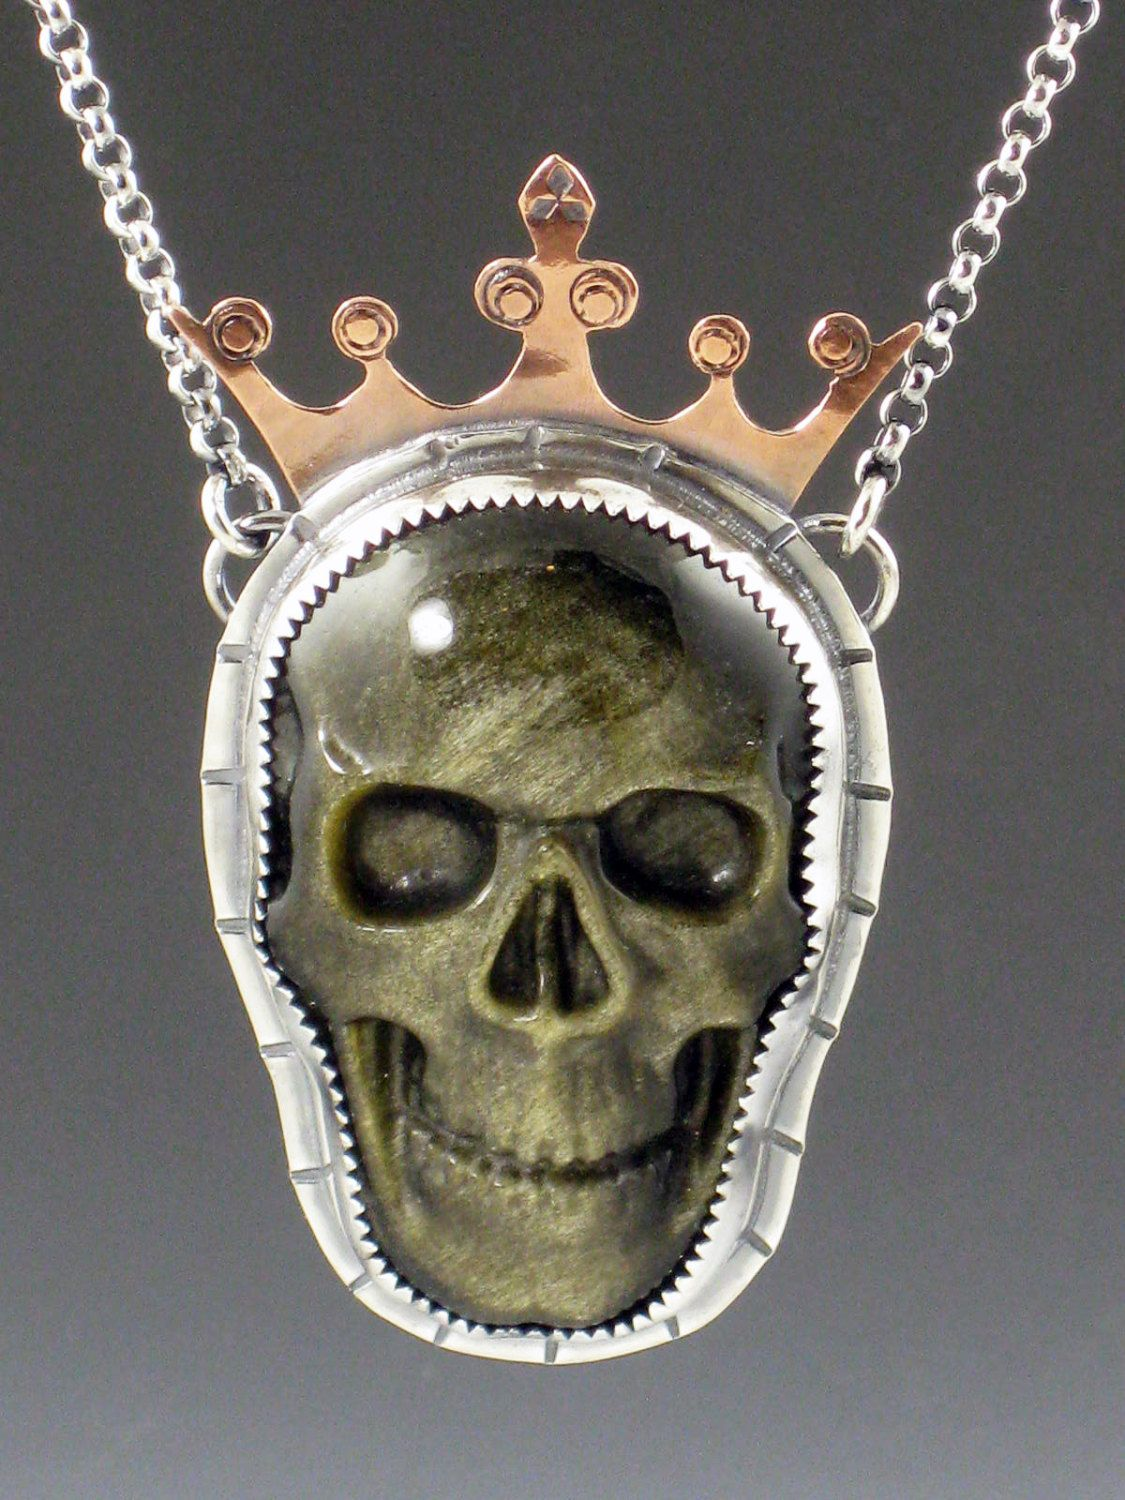 Rainbow obsidian skull necklace skull with crown sterling silver rainbow obsidian skull necklace skull with crown sterling silver skull necklace mixed metal skull pendant carved skull copper skull mozeypictures Image collections